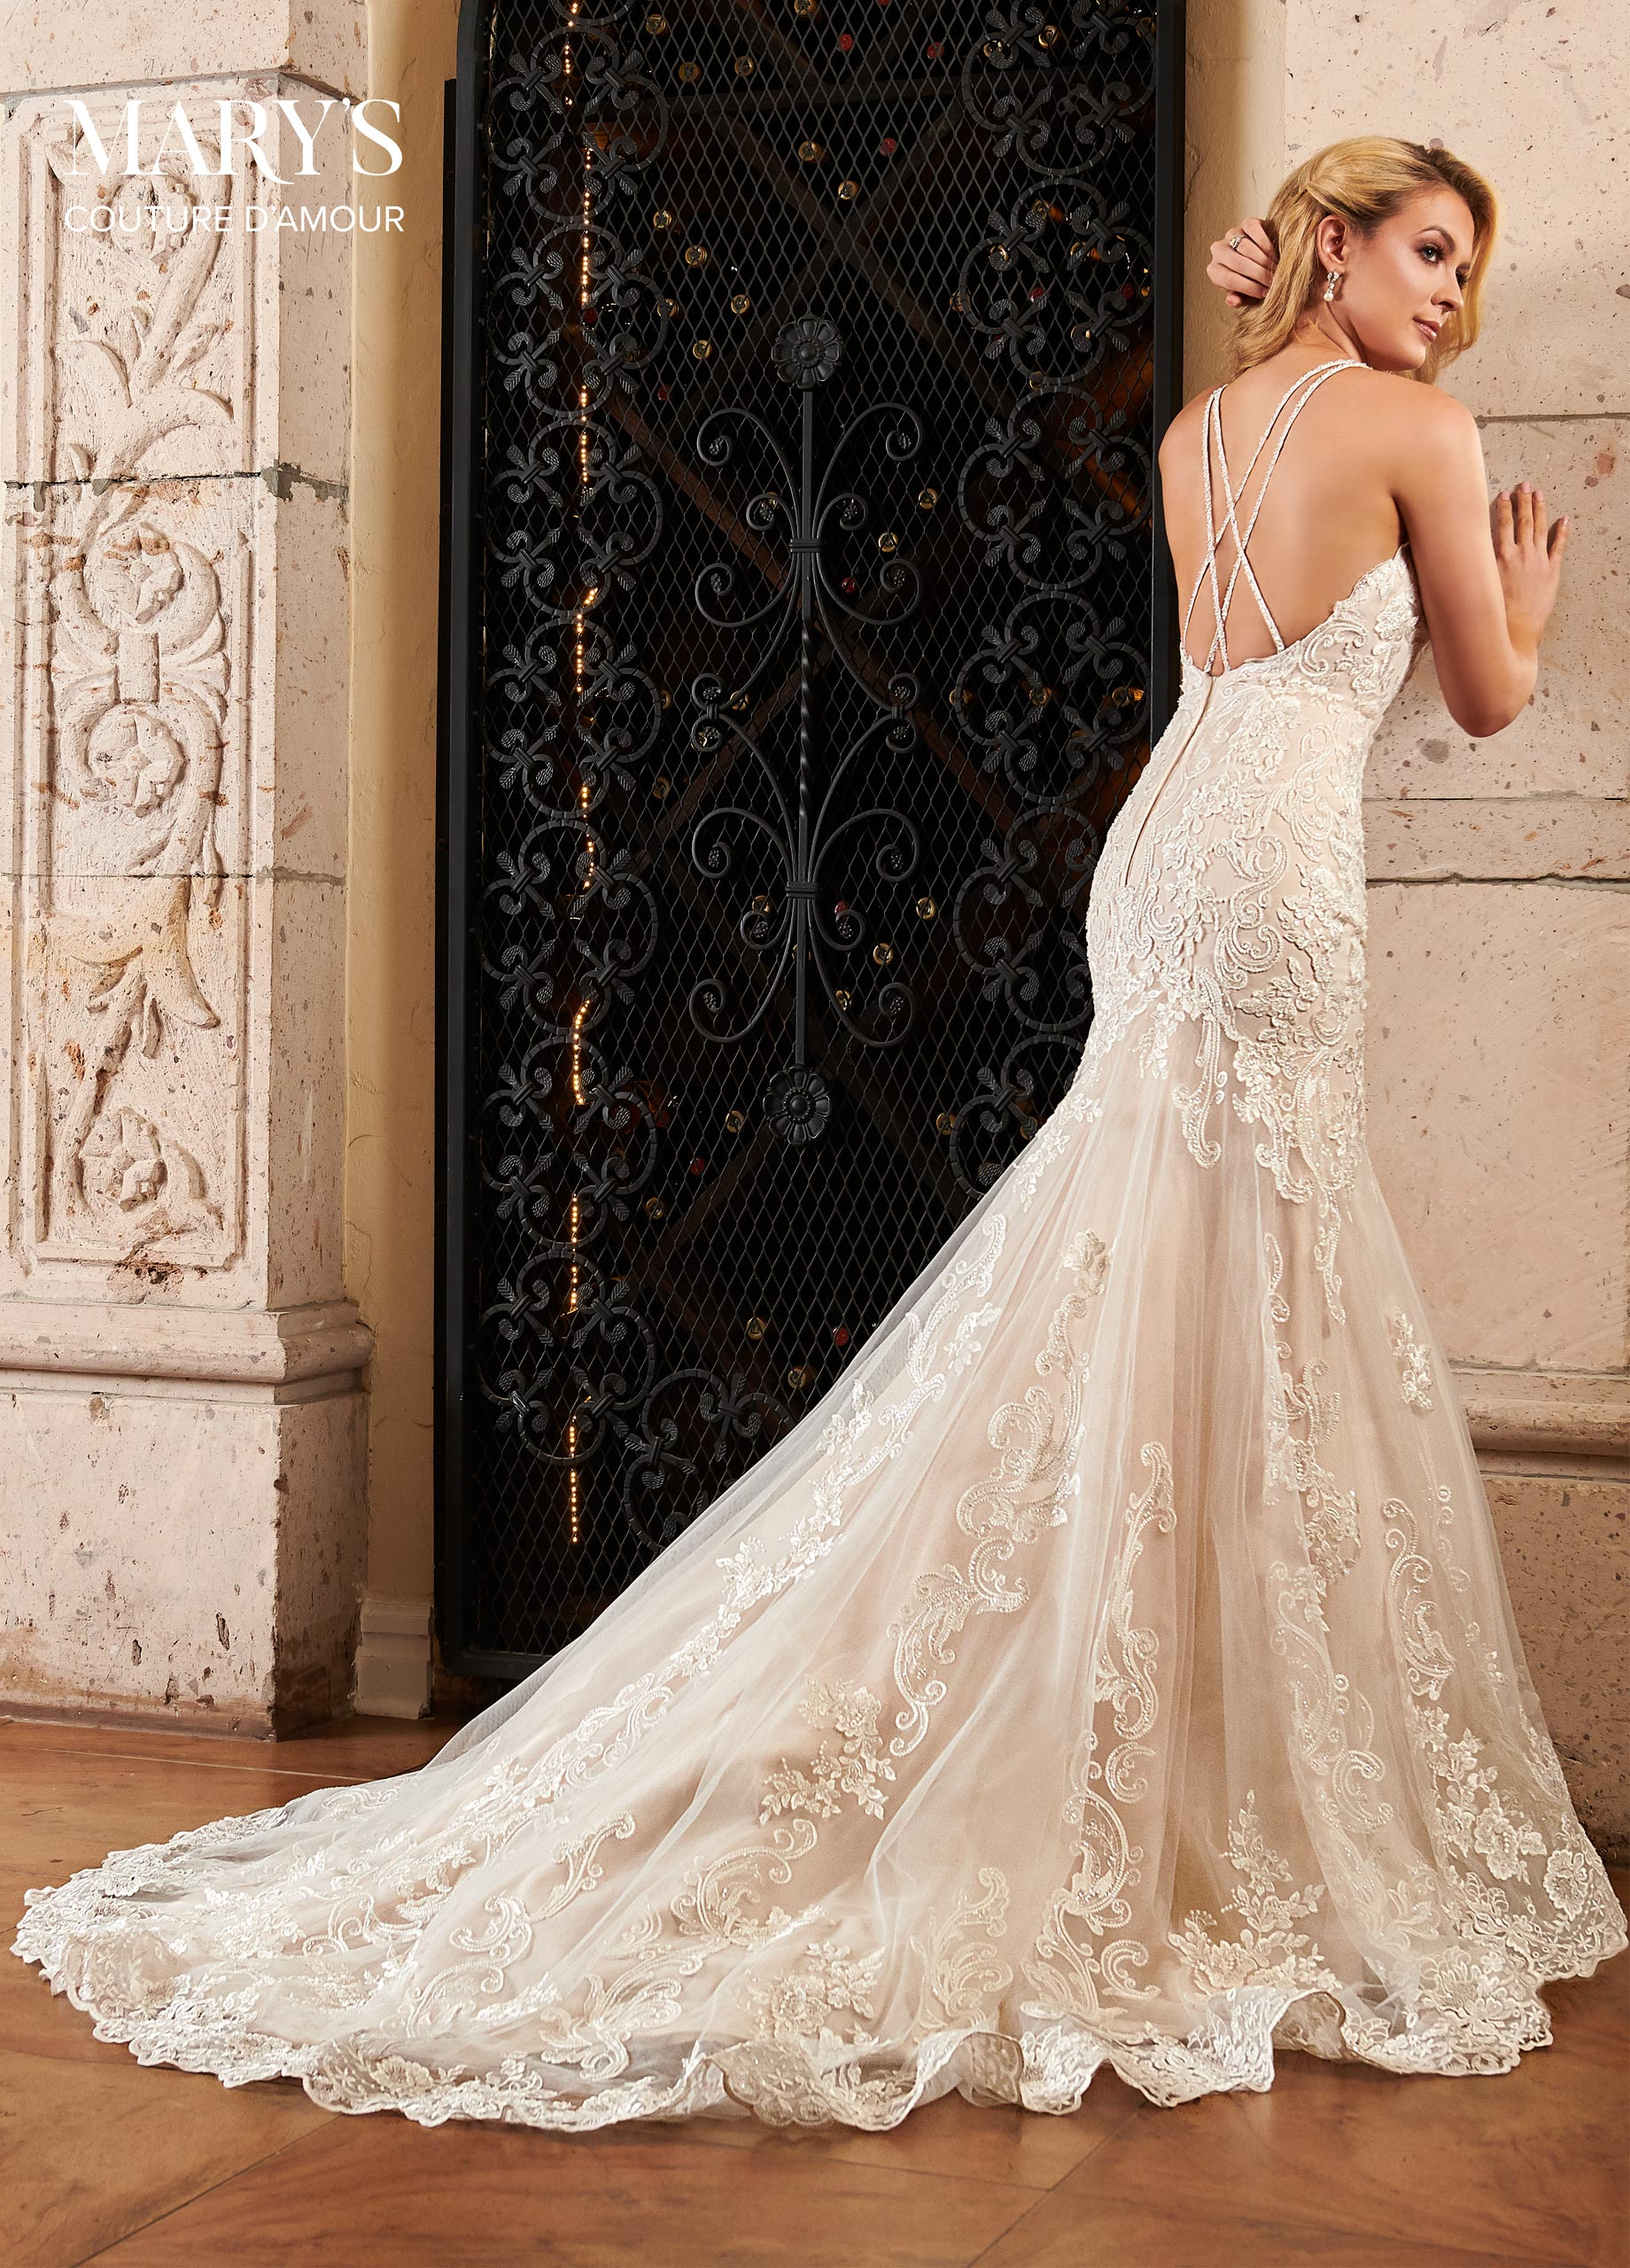 Couture Damour Bridal Dresses | Couture d'Amour | Style - MB4089